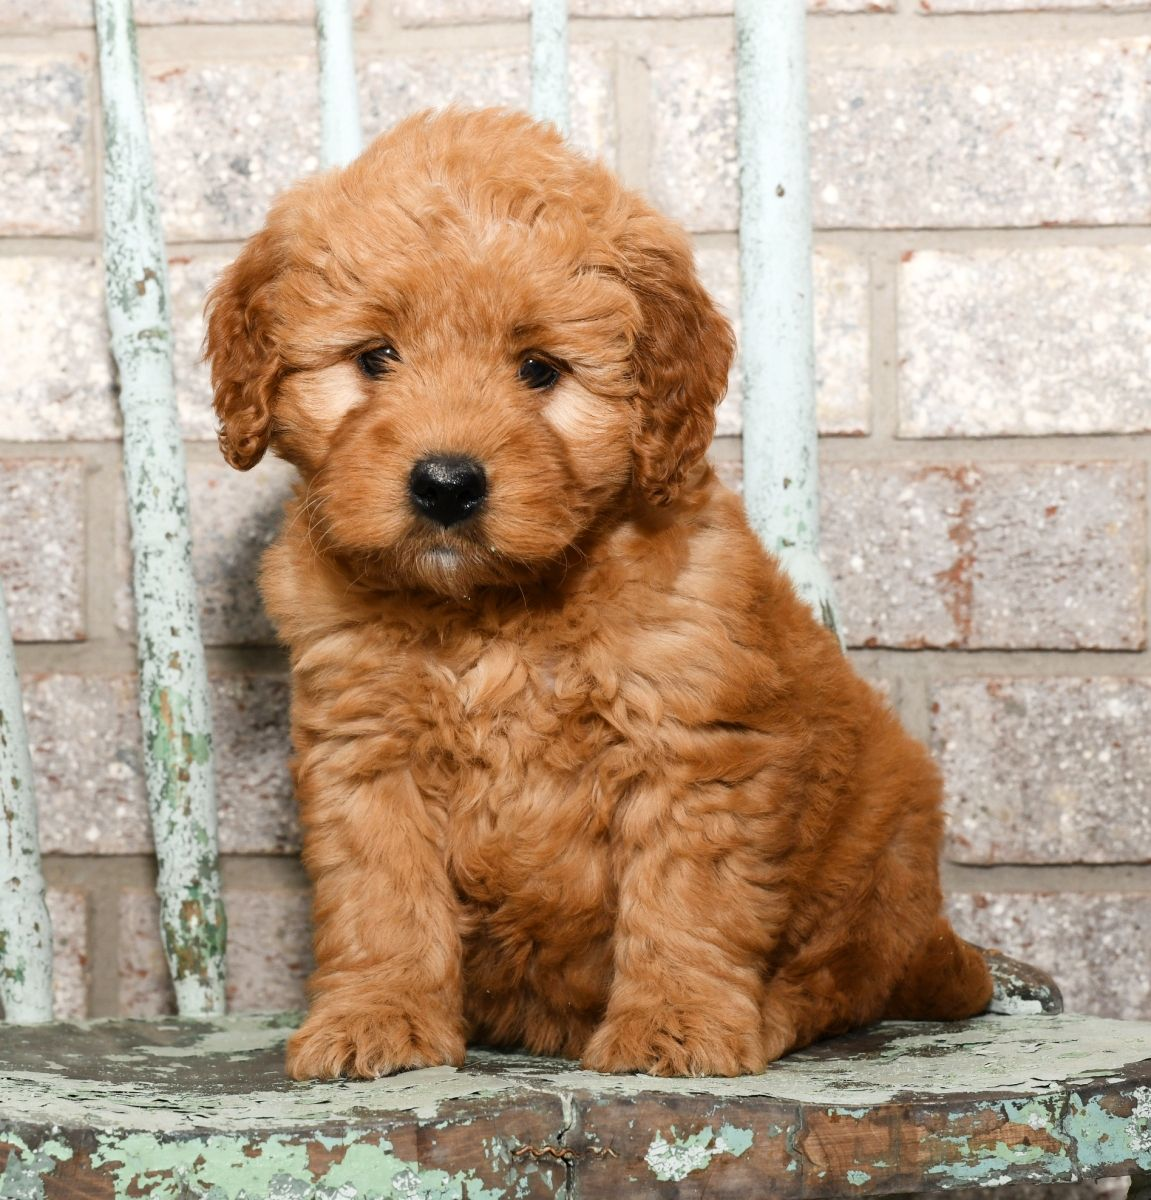 Puppies for Sale Baby animals pictures, Cute baby animals